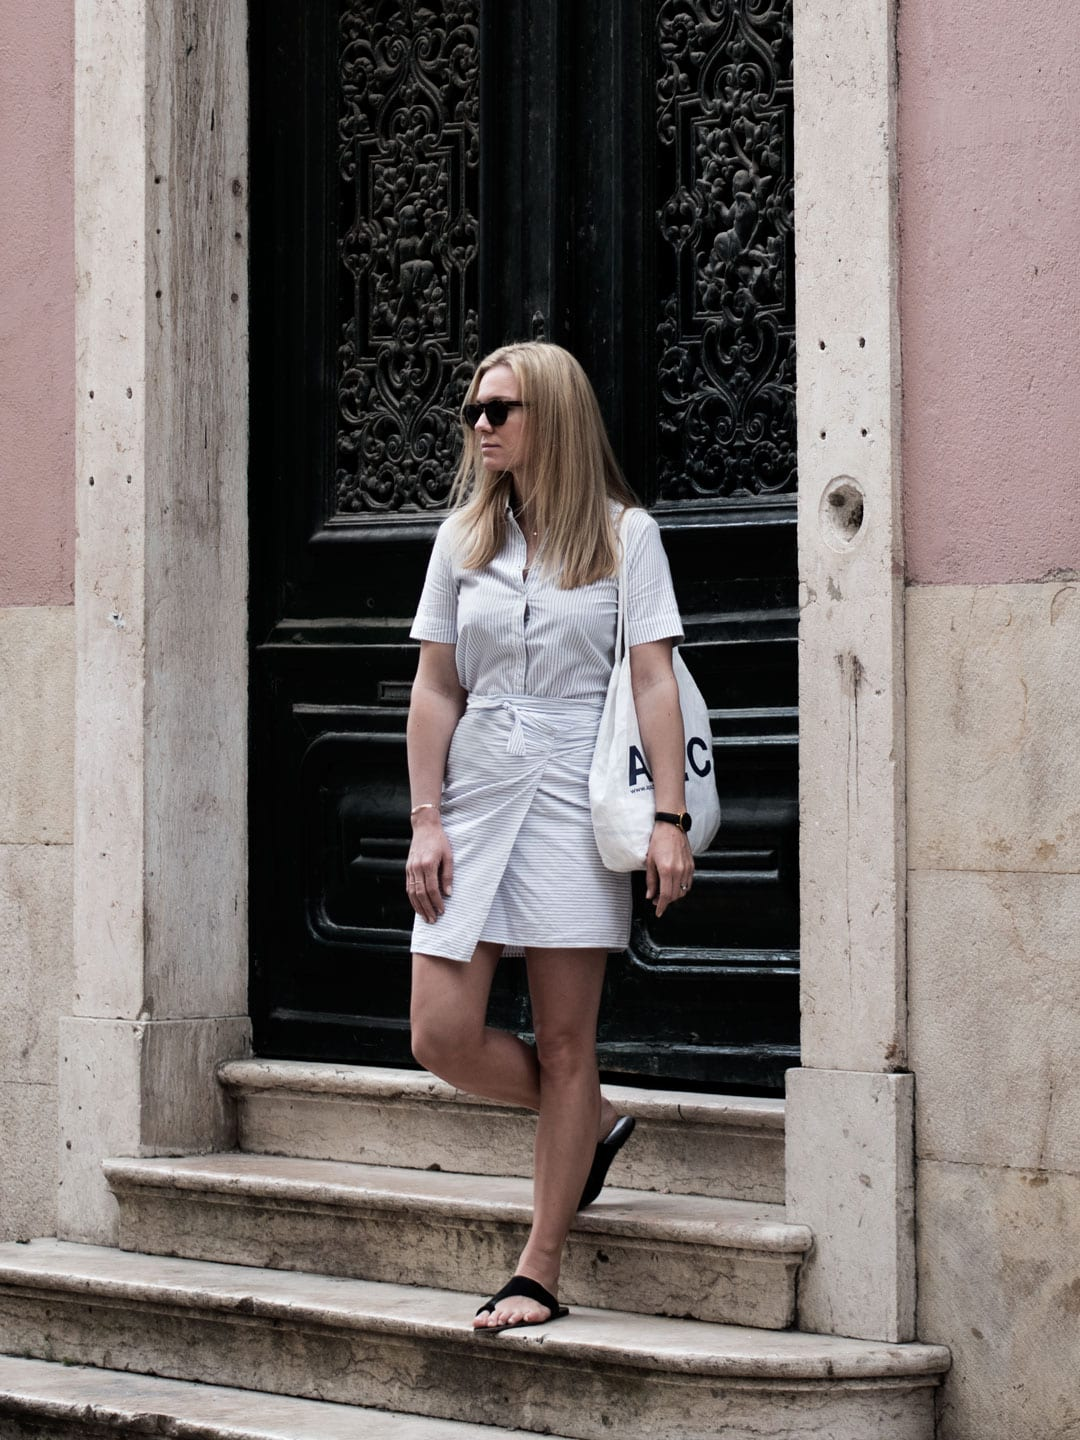 Rouje Wrap Dress, ATP Sandals, APC Tote Bag & Kapten & Son Sunglasses